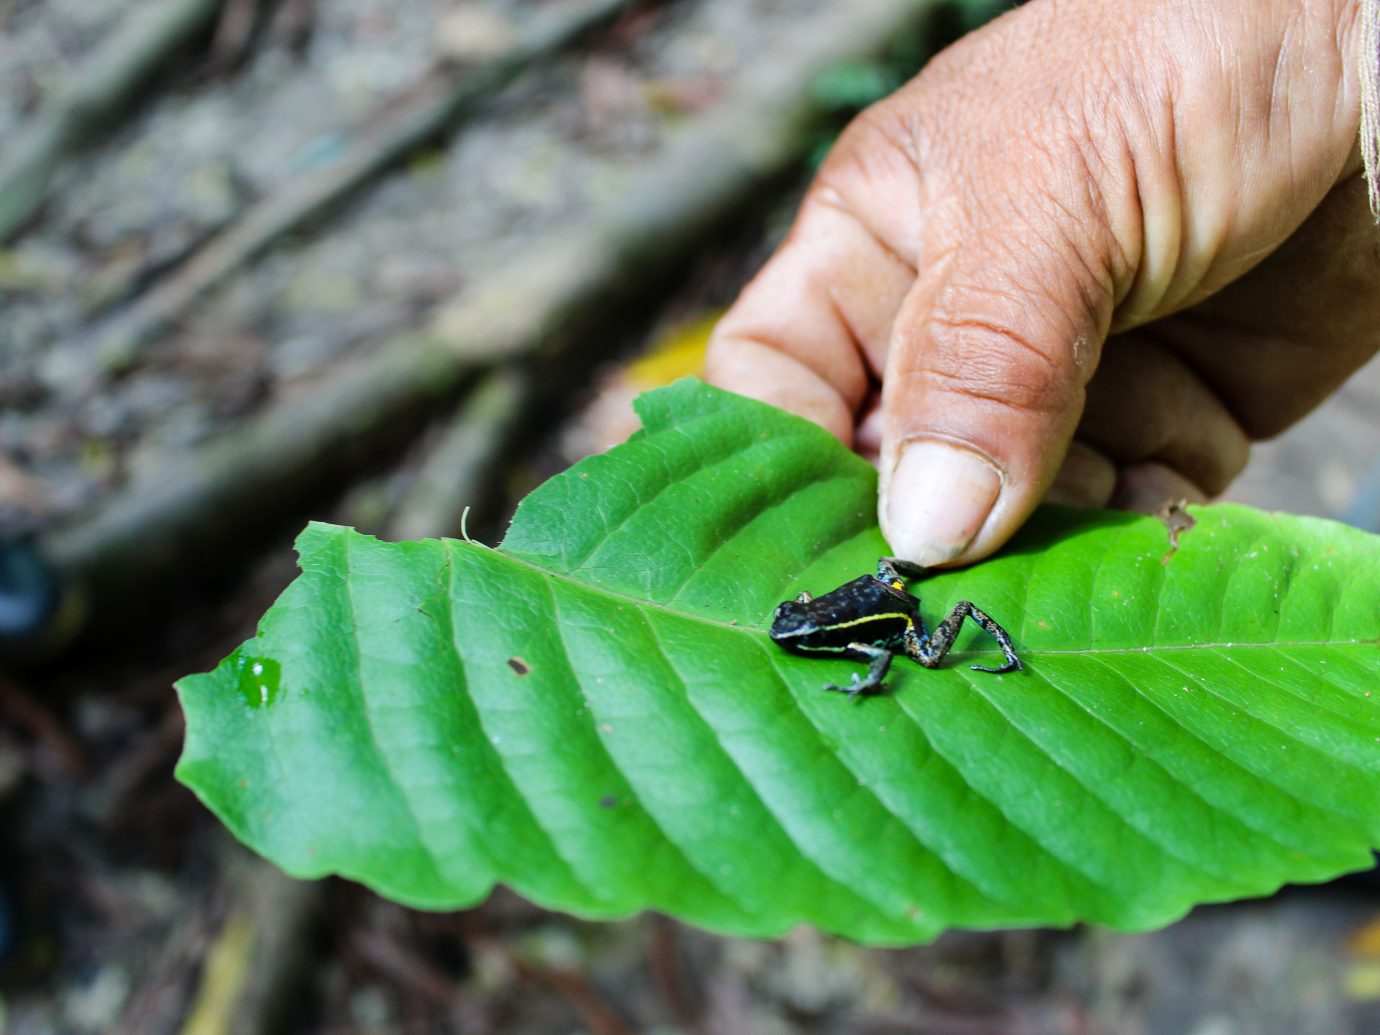 Travel Tips person green leaf insect fauna hand organism plant macro photography invertebrate membrane winged insect pest larva tree